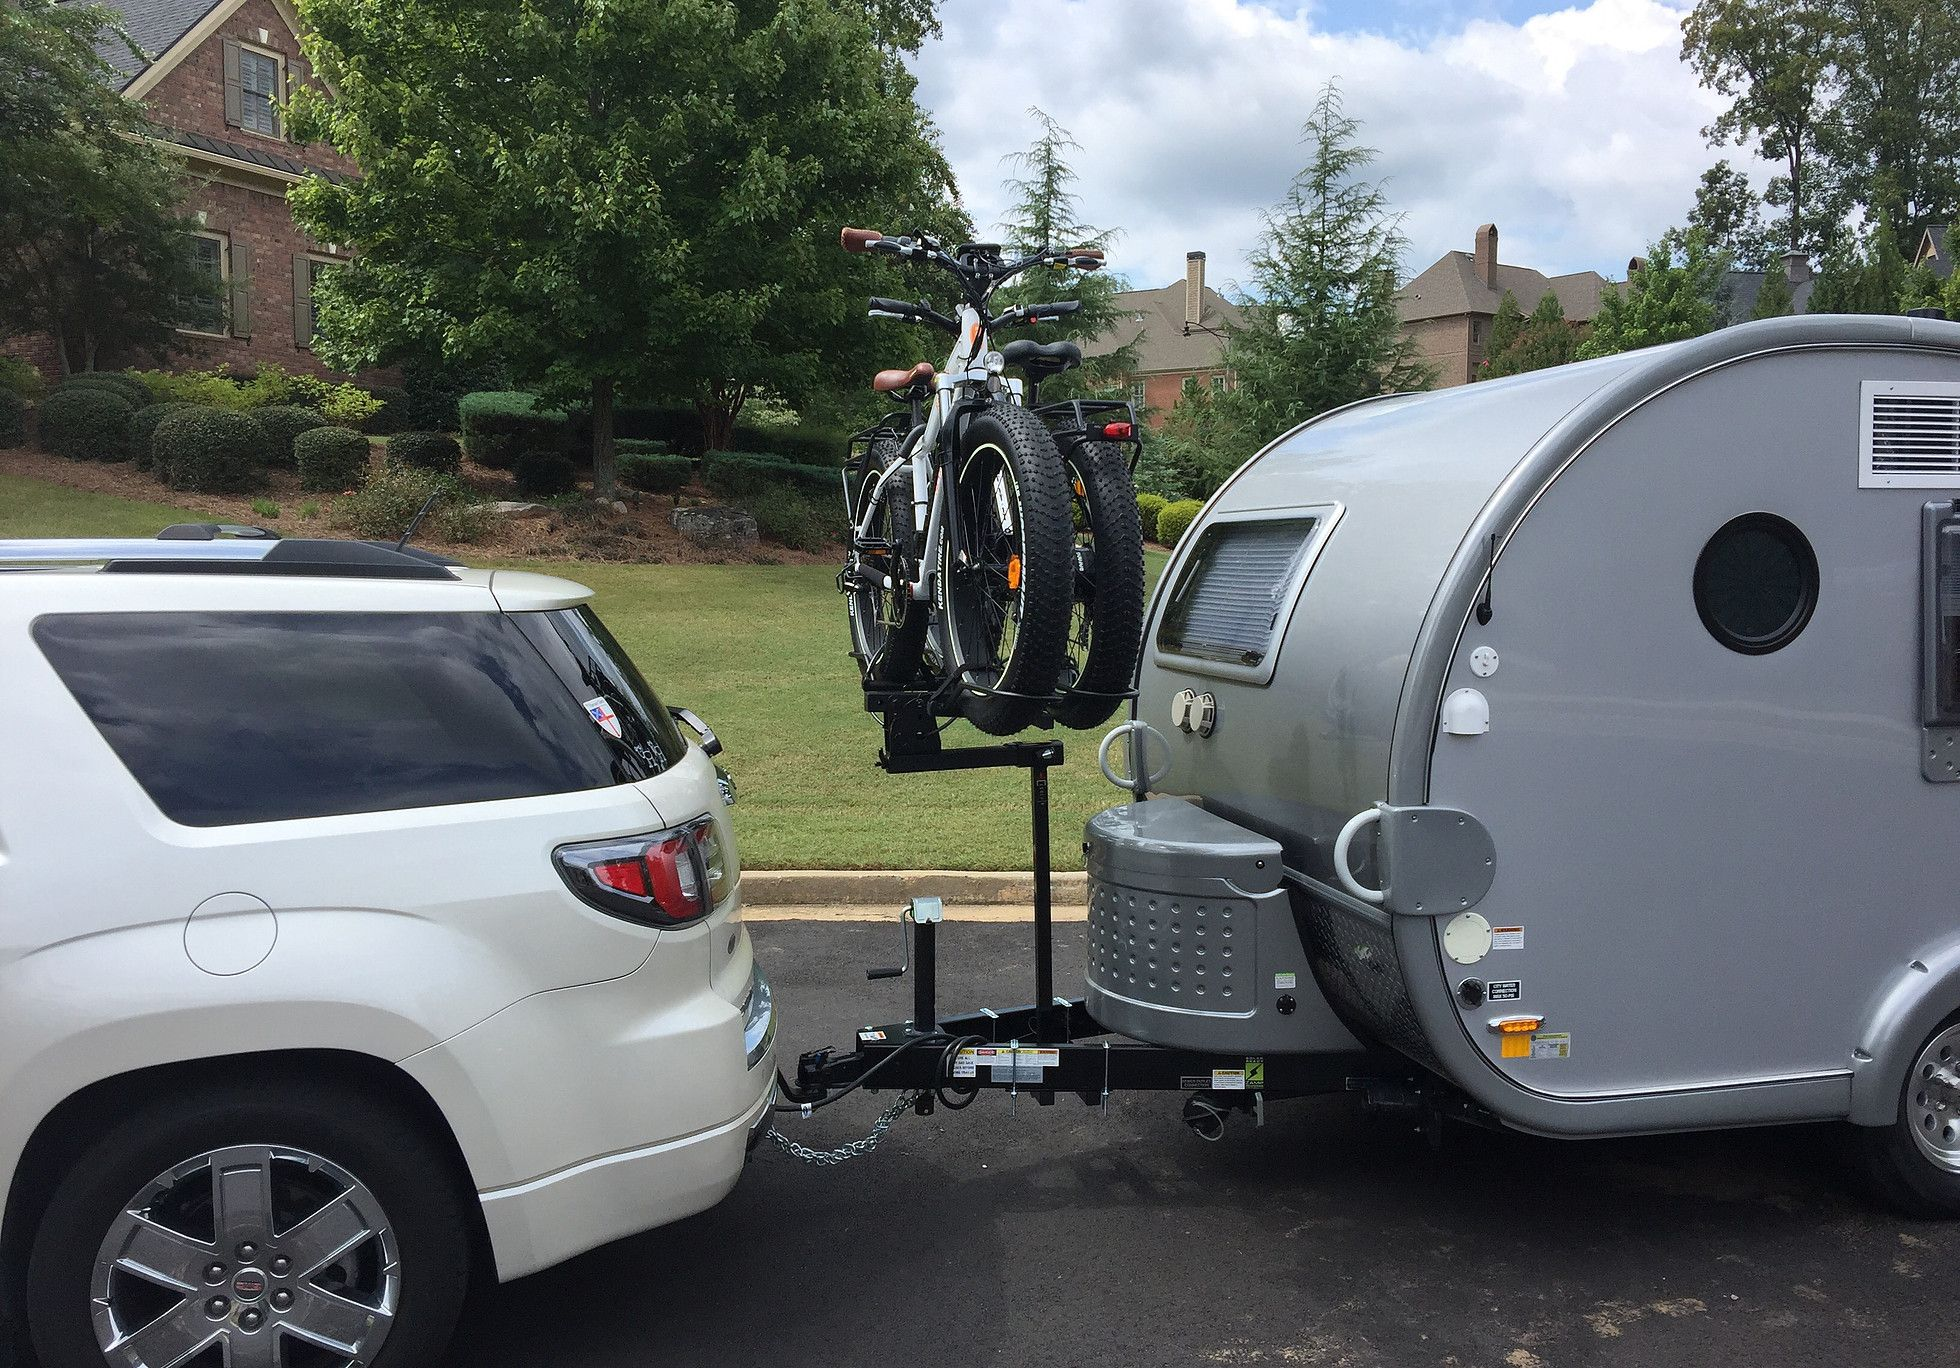 Up N Front Allows You To Carry Your Bikes On The Front Of Your Trailer Above Your Batteries And Propane Tanks With Less Bounce And Bike Rack Bike Propane Tank